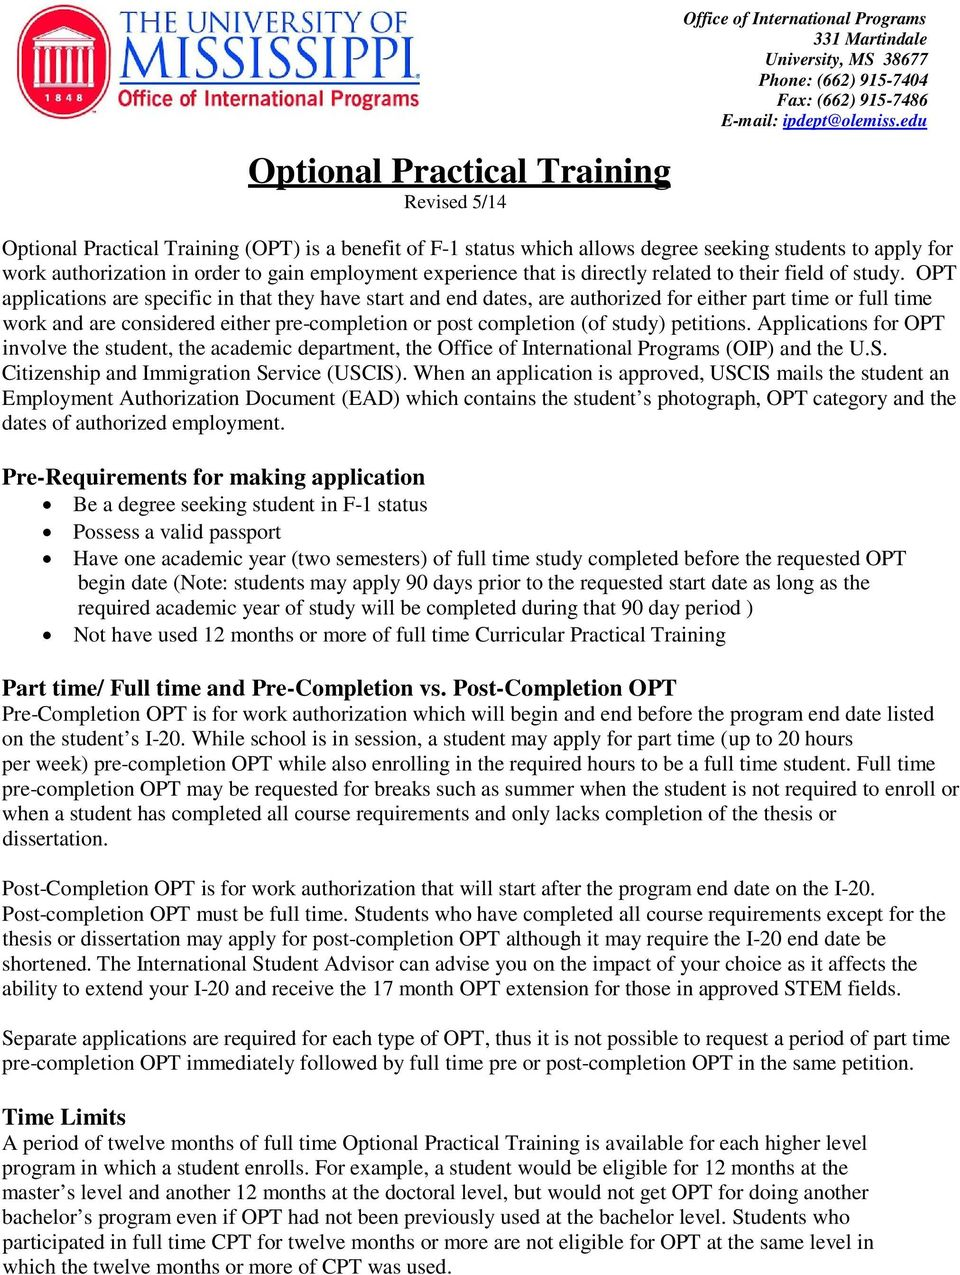 OPT applications are specific in that they have start and end dates, are authorized for either part time or full time work and are considered either pre-completion or post completion (of study)